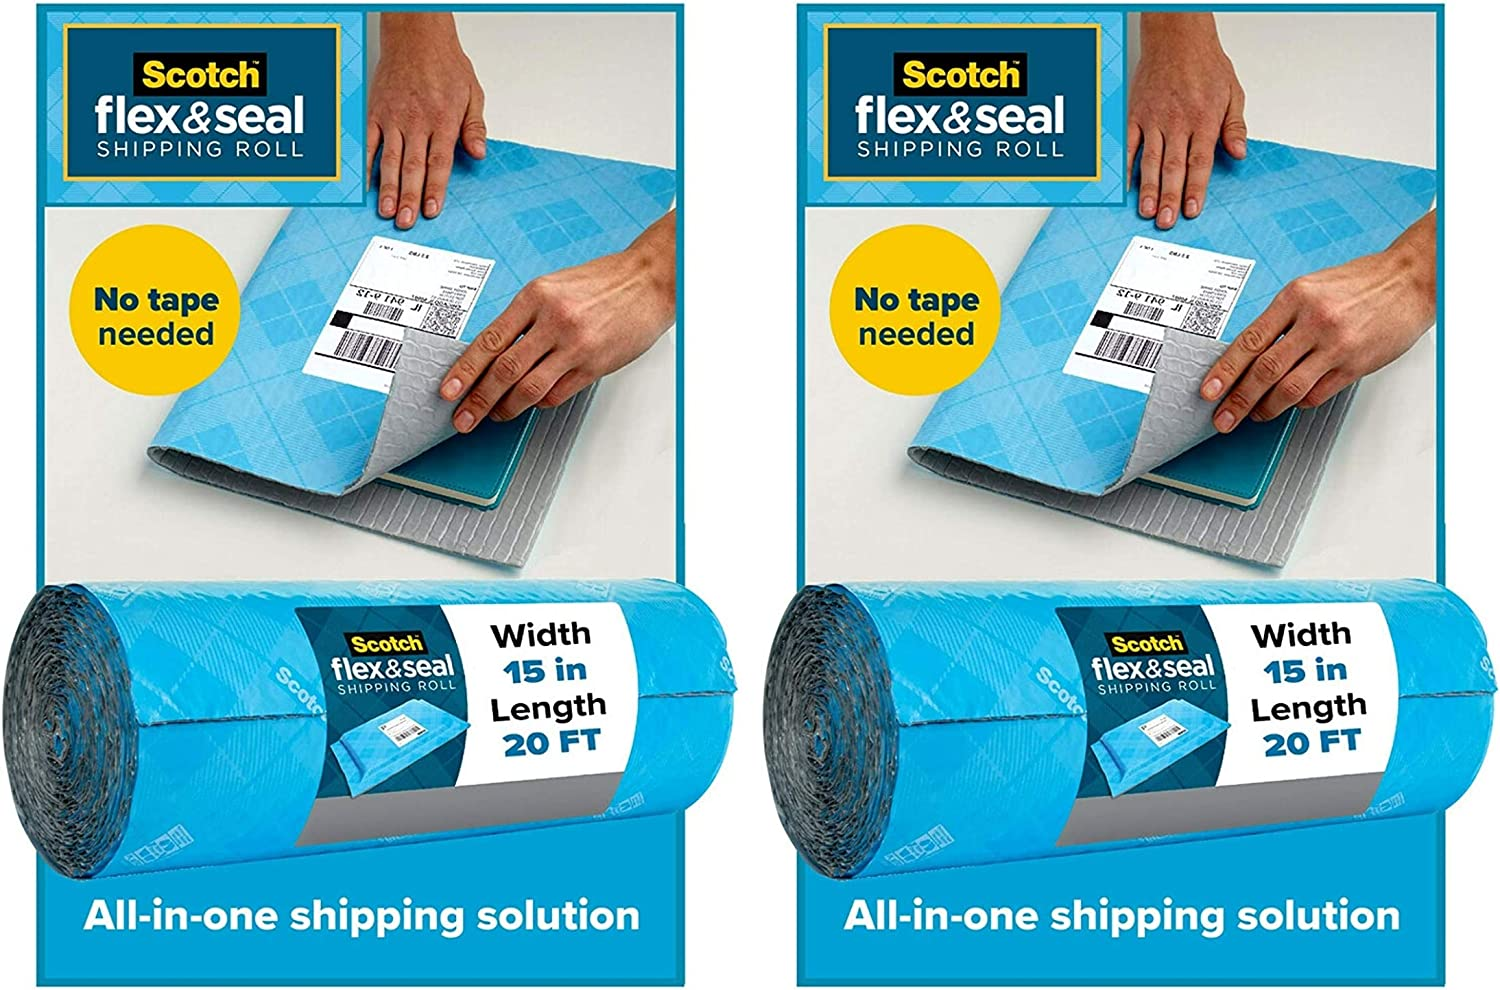 20 Ft x 15 in Scotch Flex /& Seal Shipping Roll 2 Pack